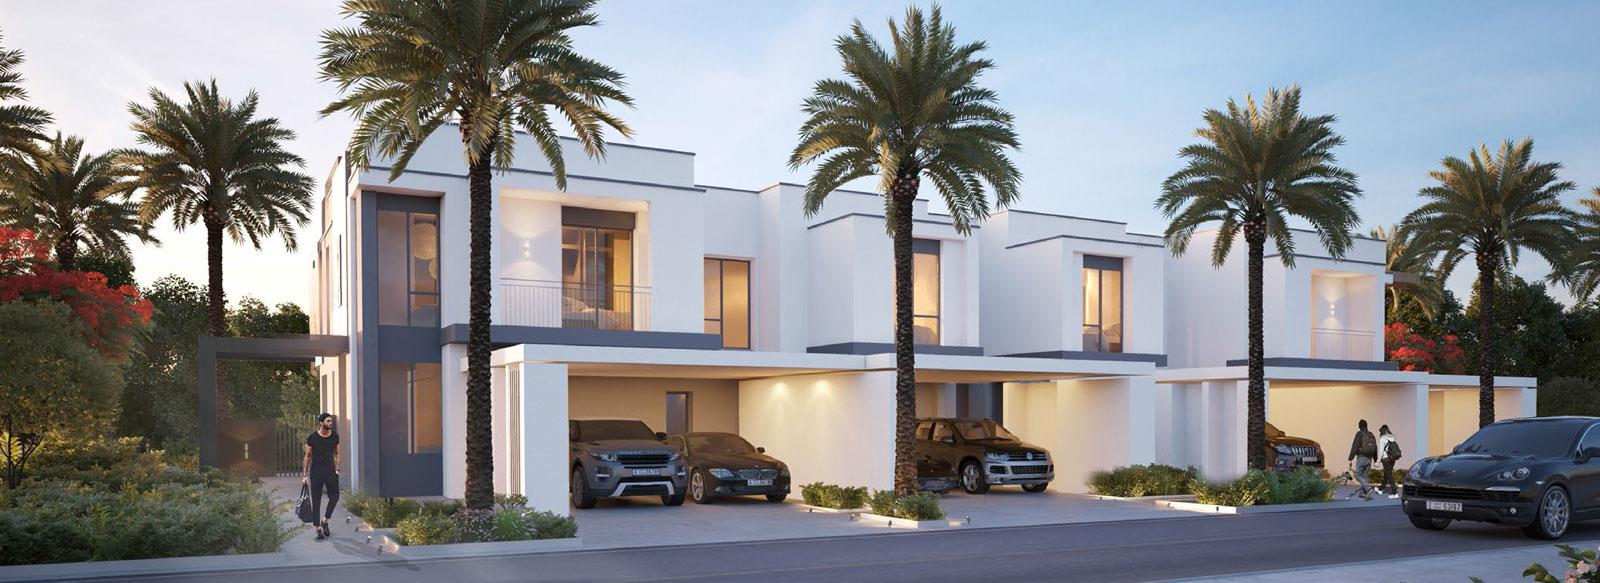 Luxury 3, 4 &amp; 5 Bedroom Townhouses,<div>4BR Starting From AED 2,671,888</div>